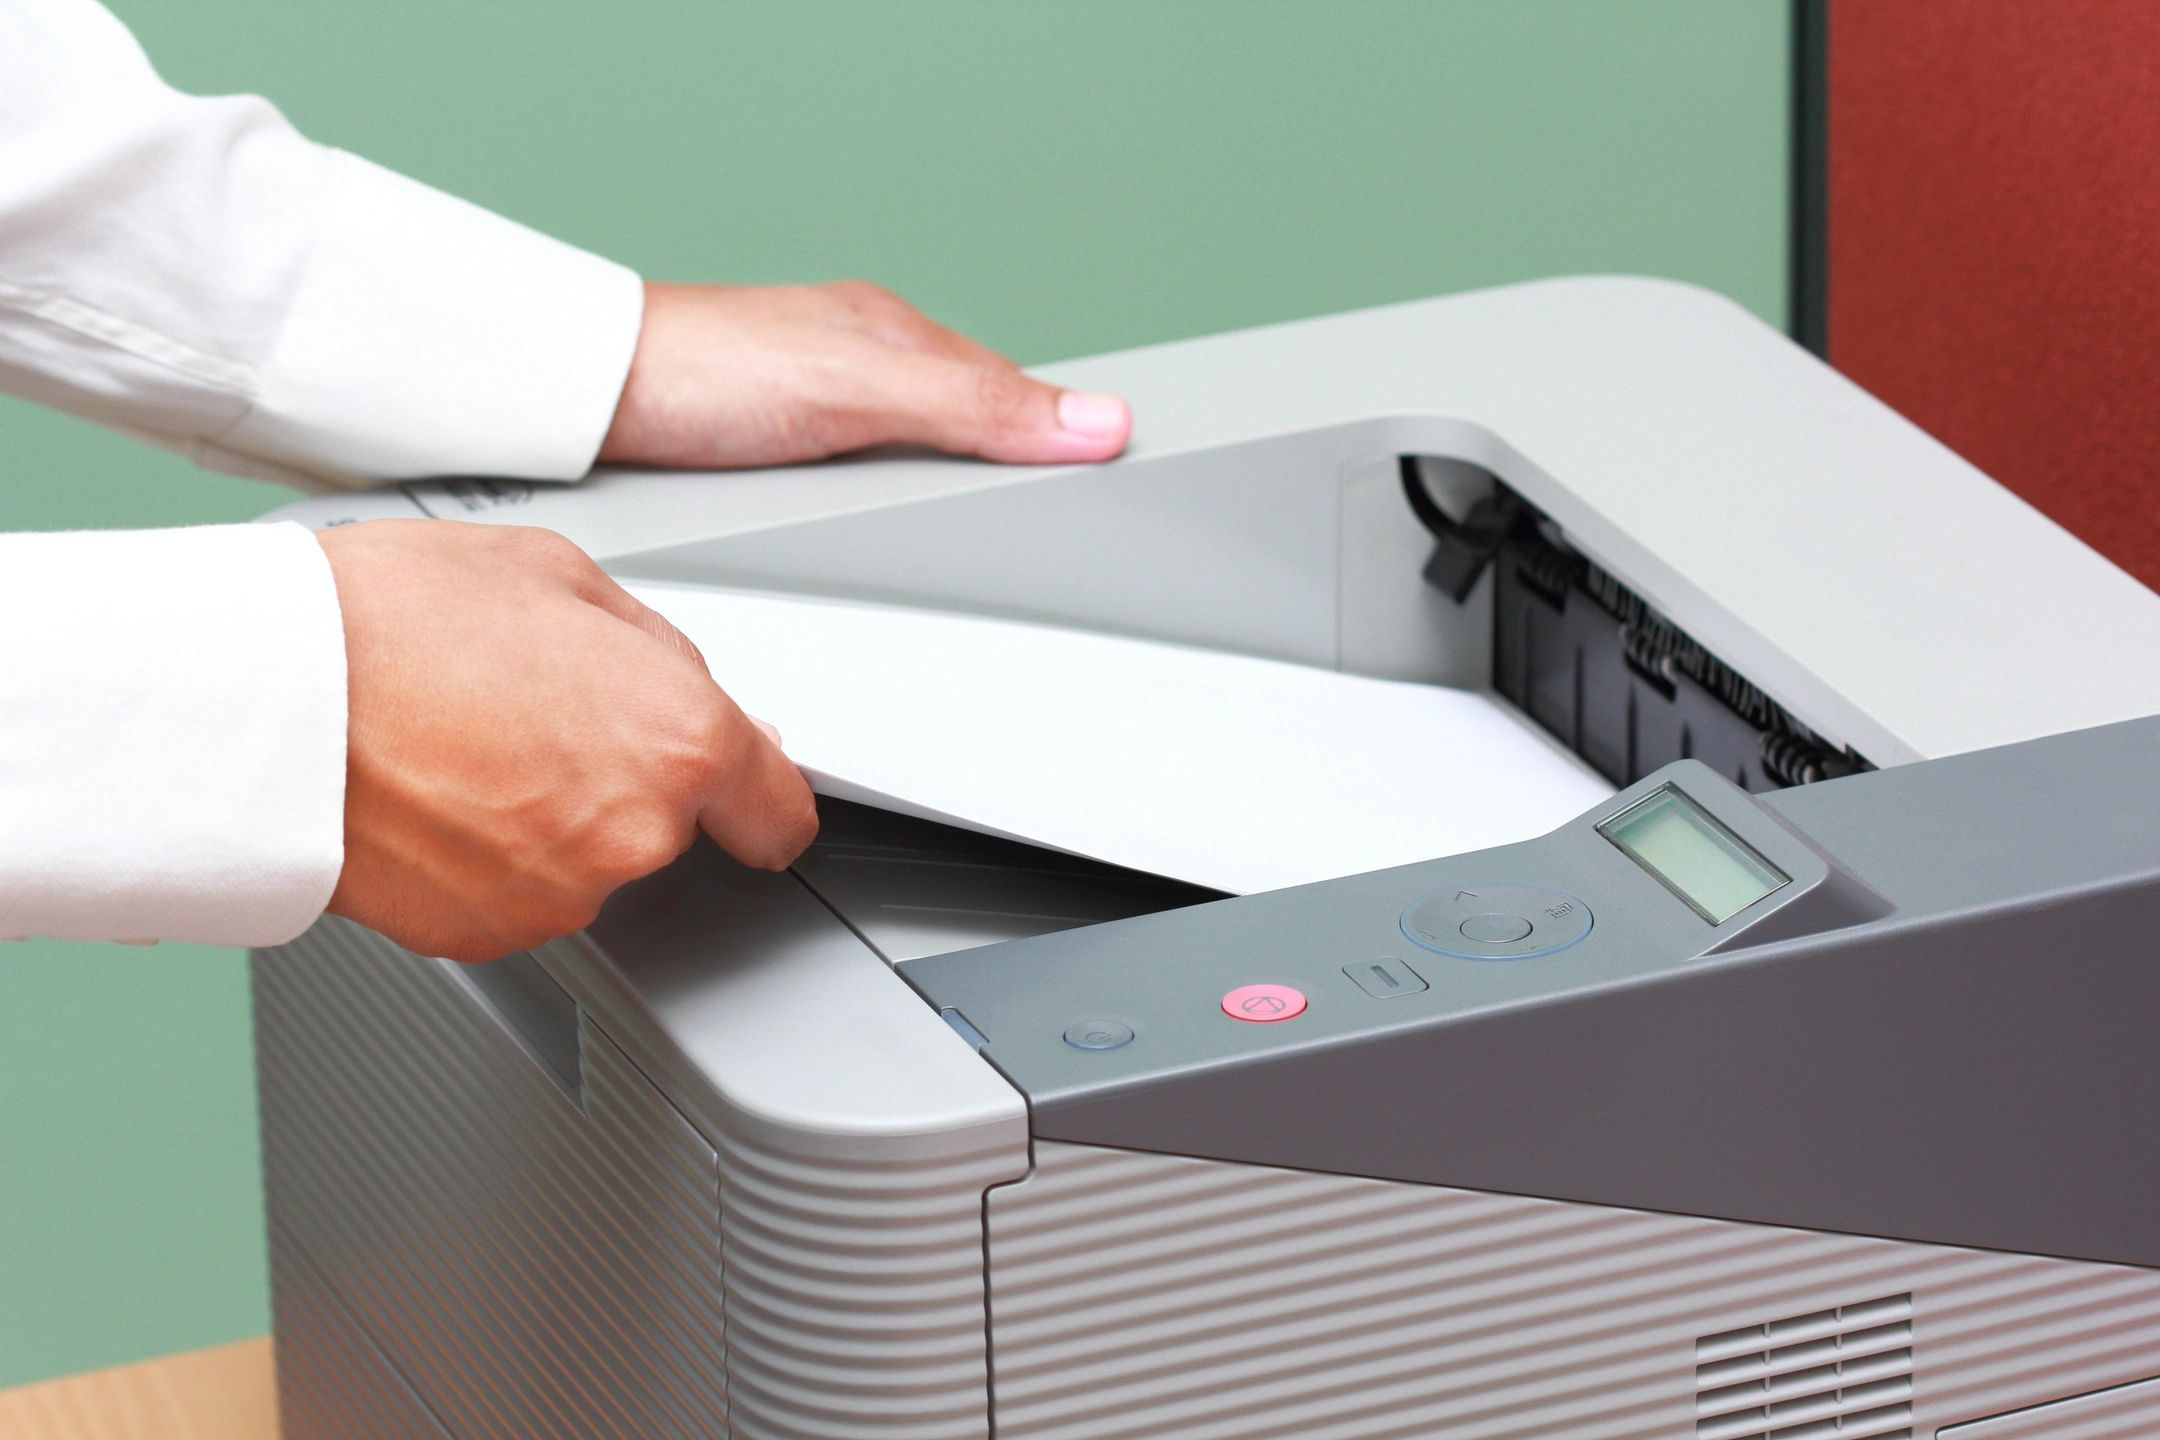 Hands taking a paper from a printer